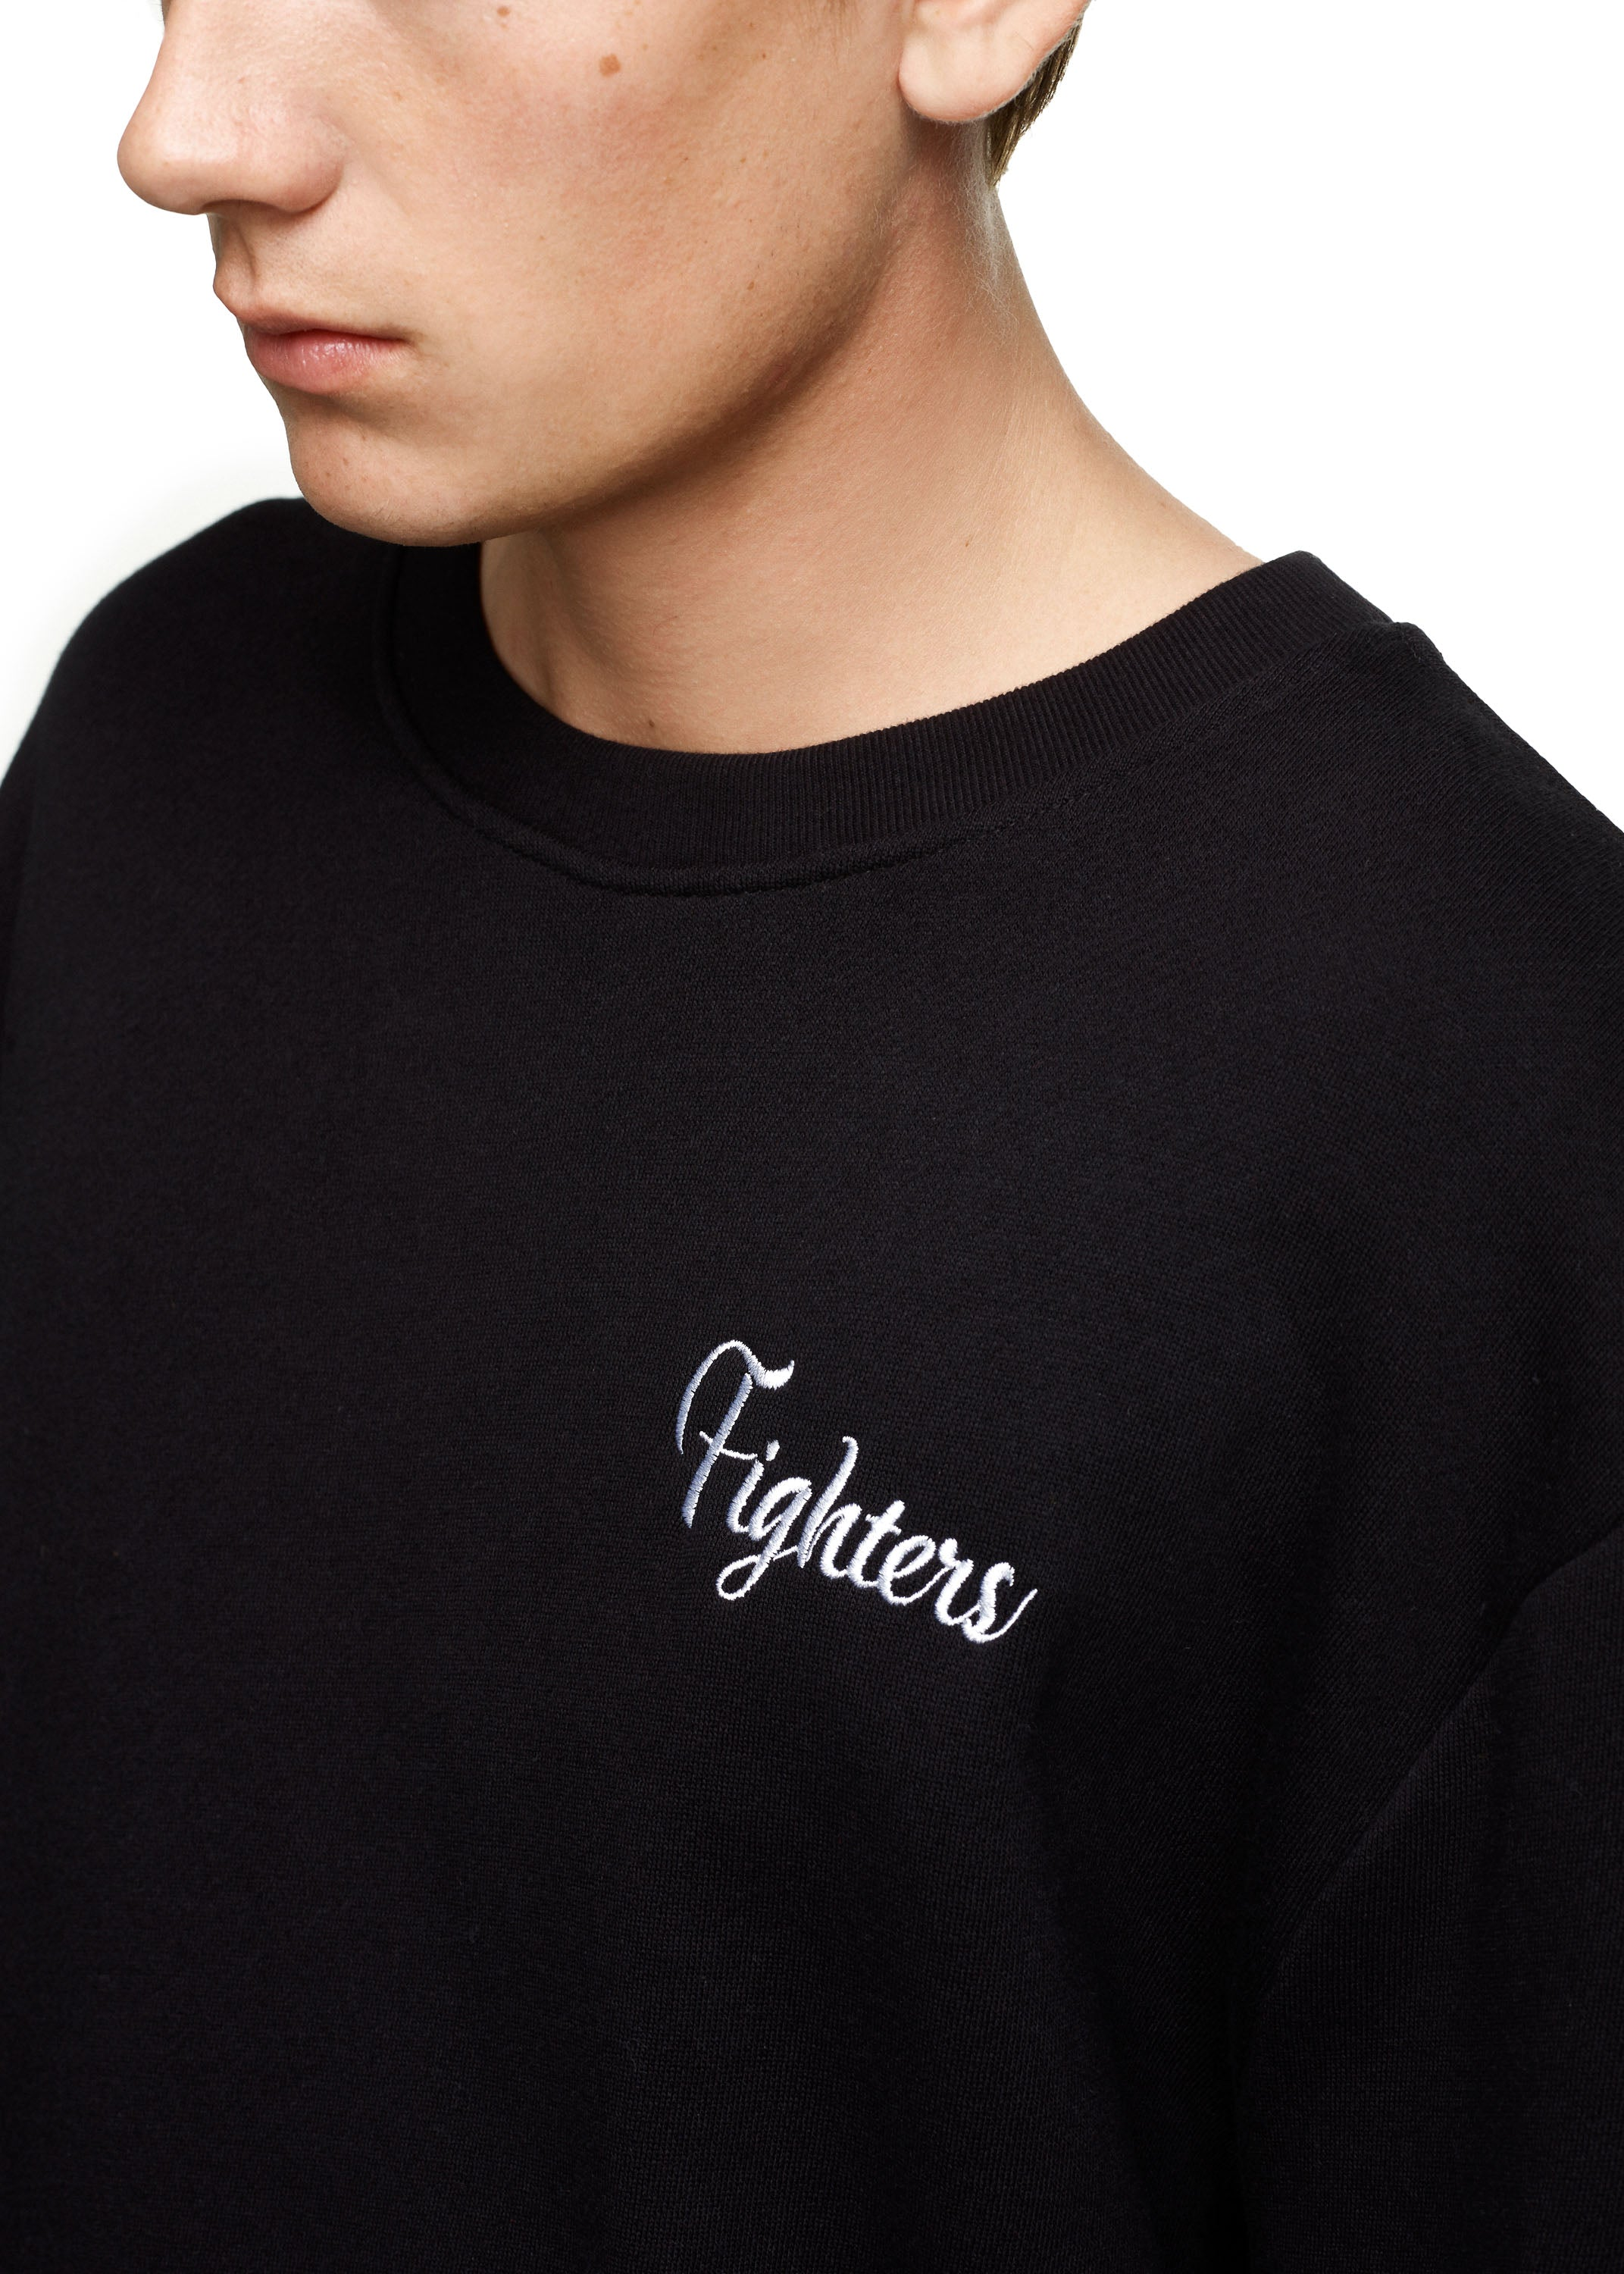 fighters-embroidered-crew-black-red-image-5